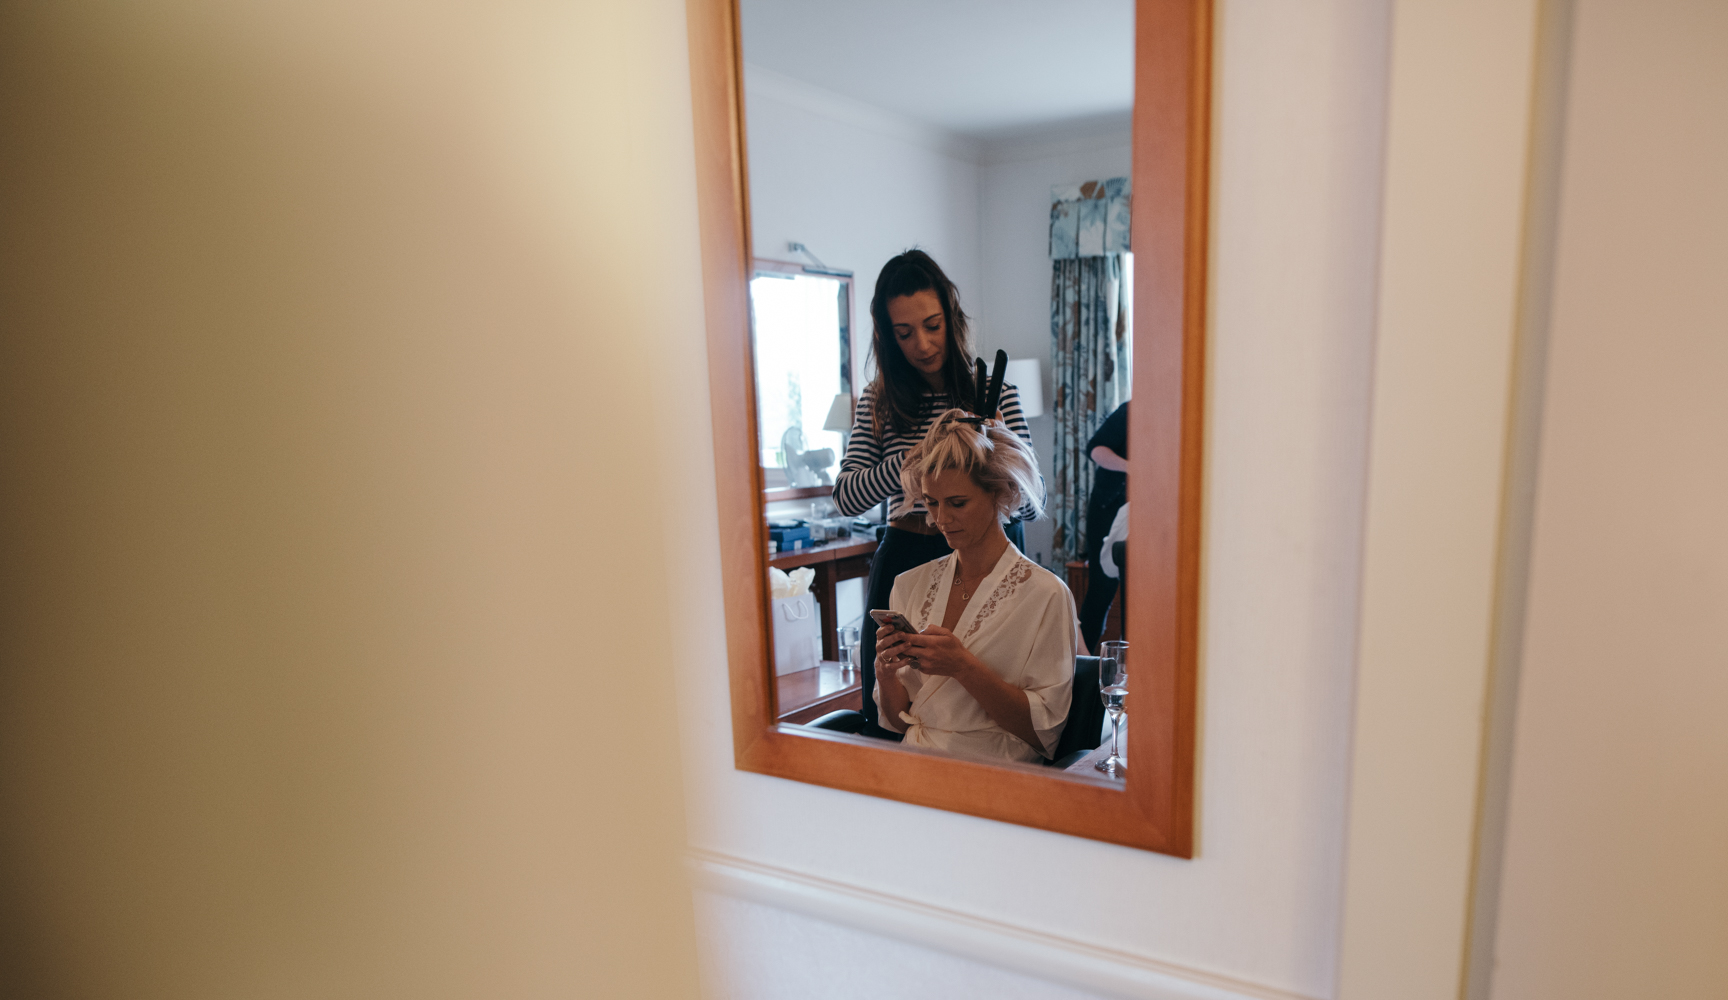 A bridesmaids reflection in a mirror during morning bridal preparations